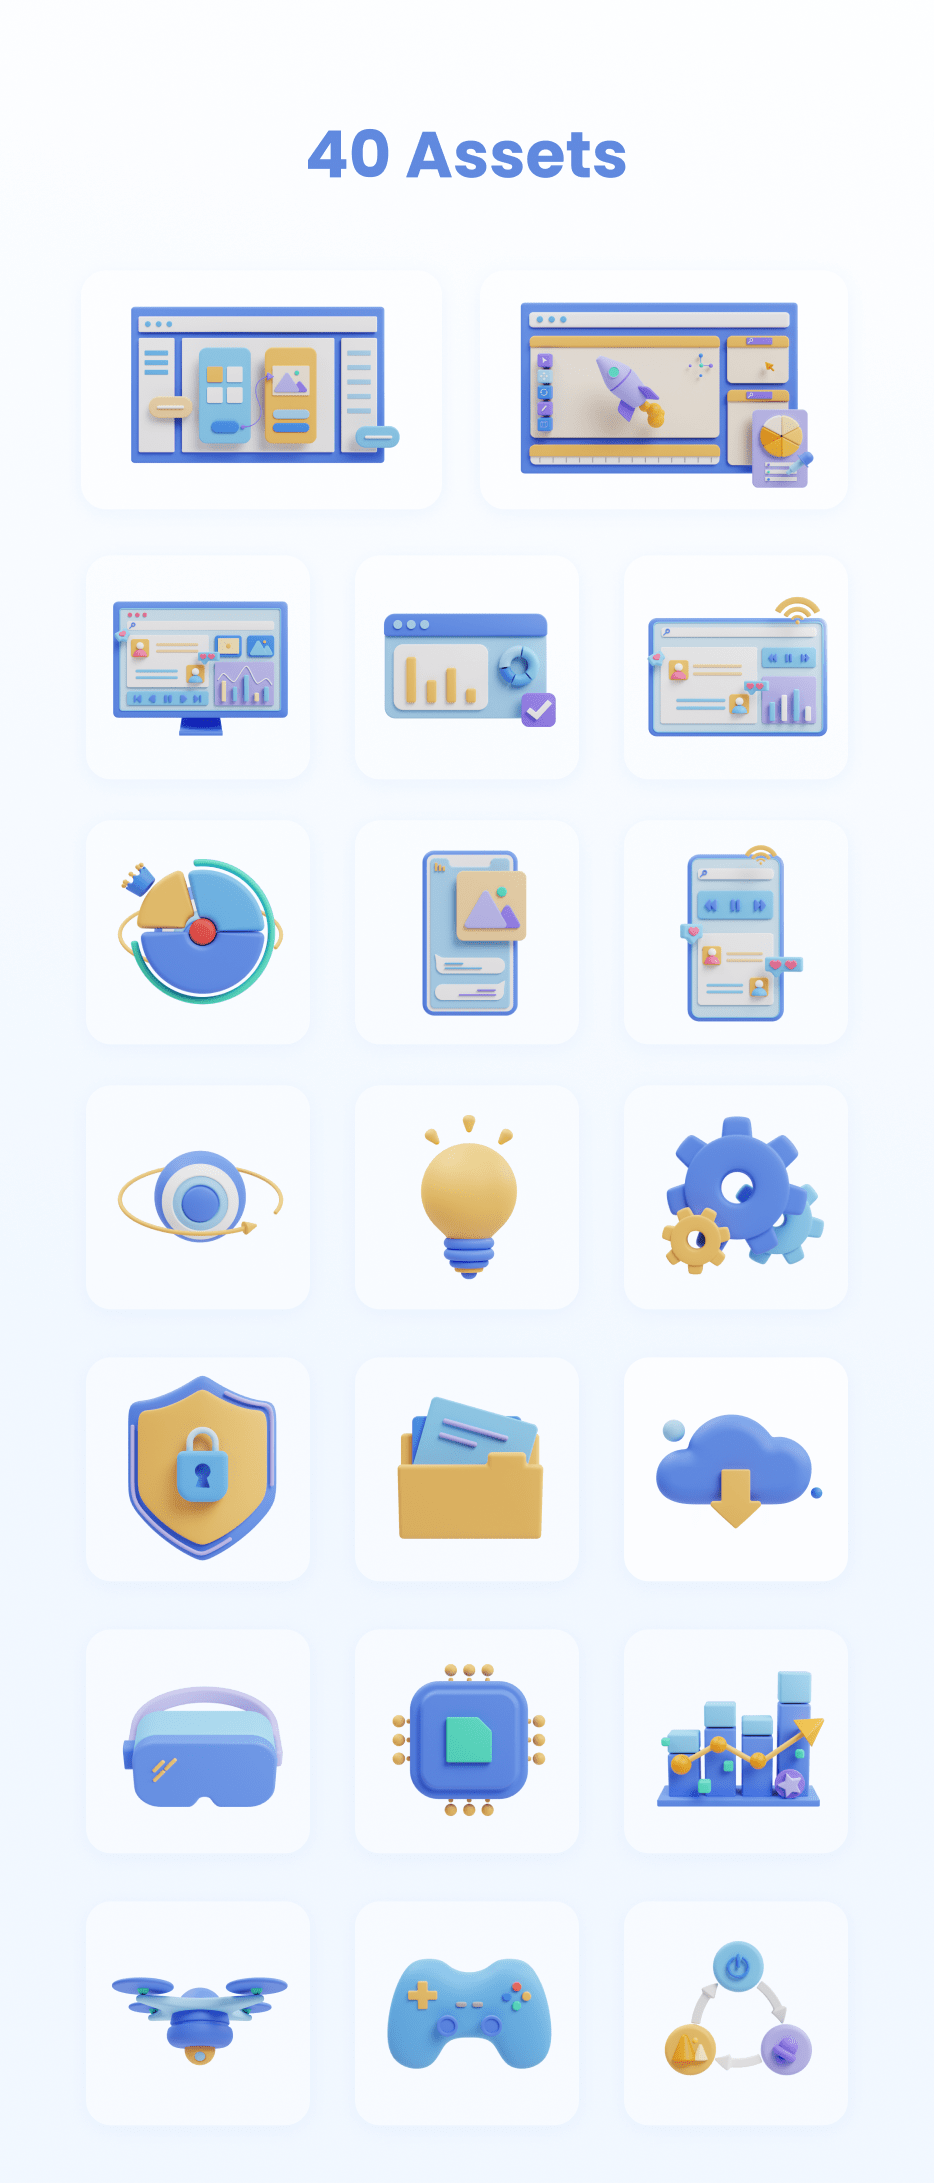 3D icons, illustrations, motion, clay, devices, technology, VR, xbox, consoles, drones, UI, interface, design, blender, investment, diagram, chart, ideas, 360 camera, cloud, document, files, cyber, security, prototyping, prototypes, ideation, firewall, folder